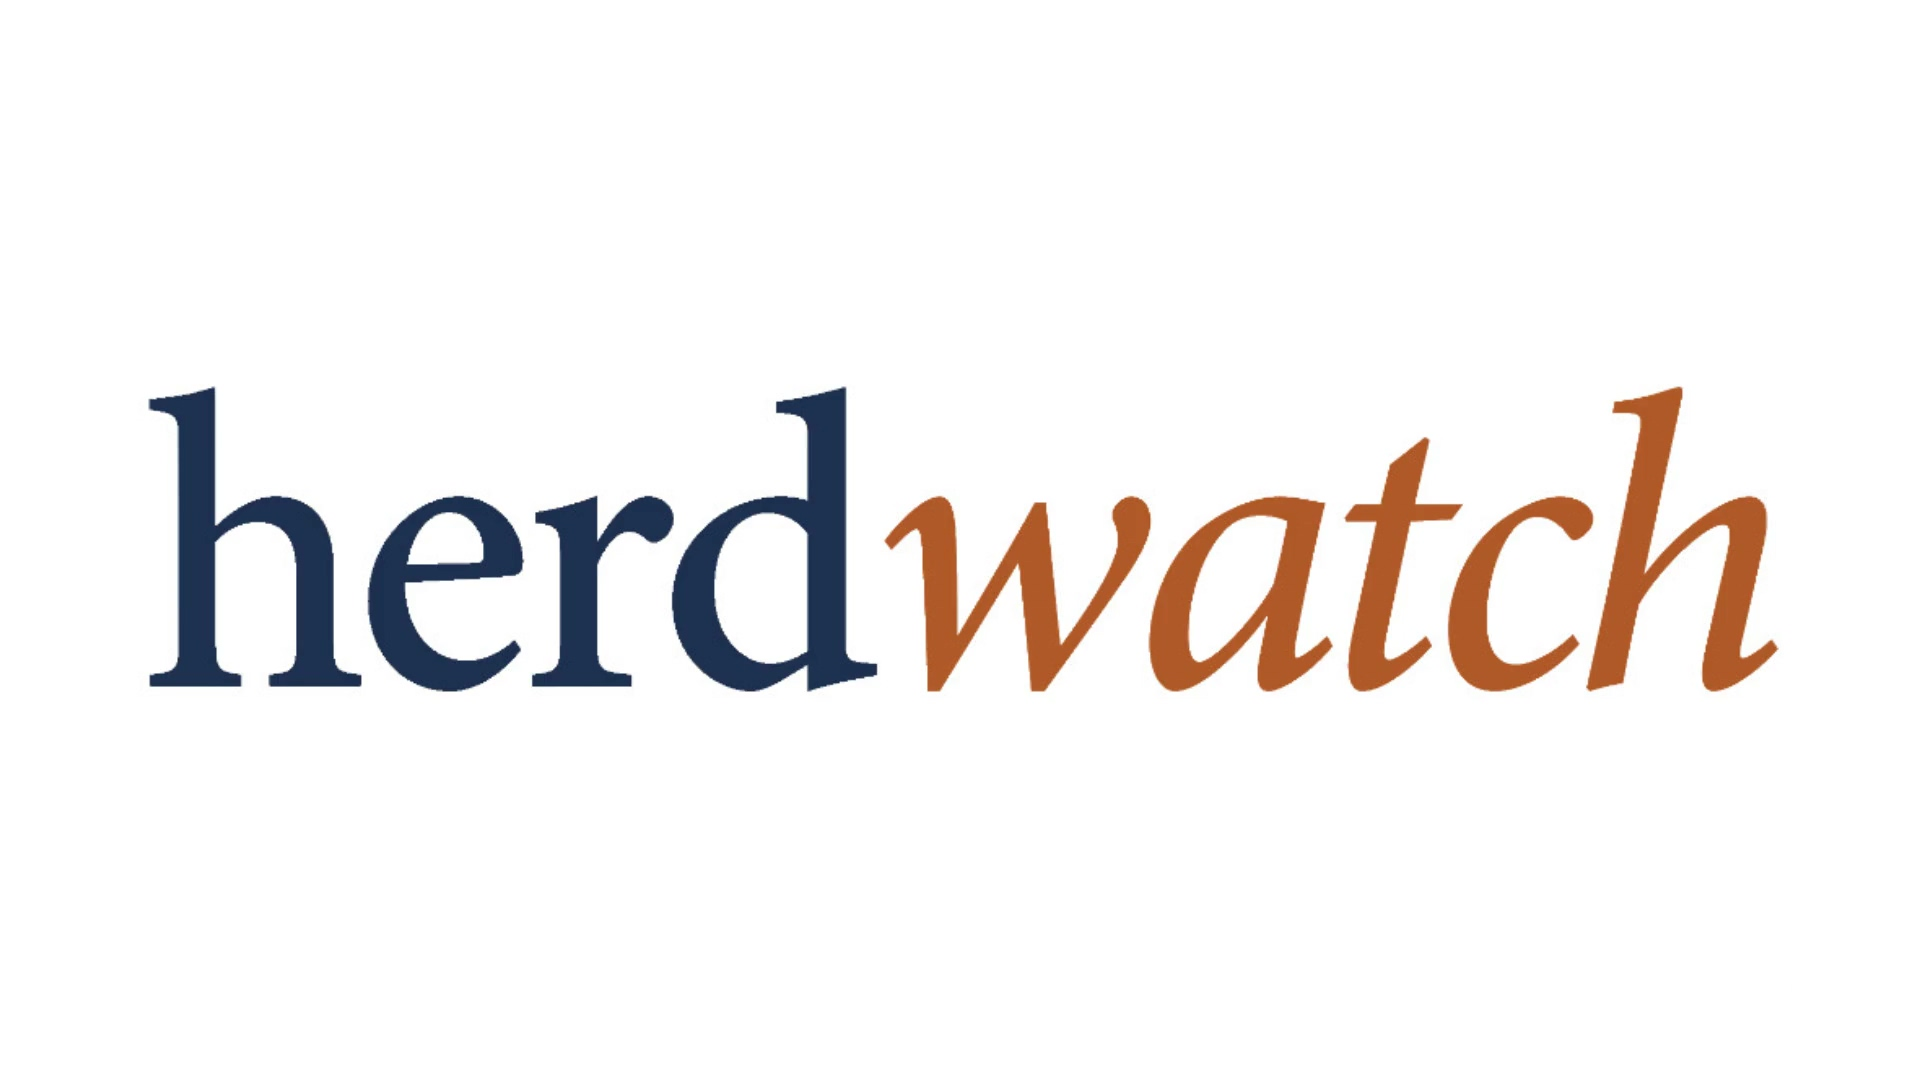 Herdwatch_logo_morphing_fast